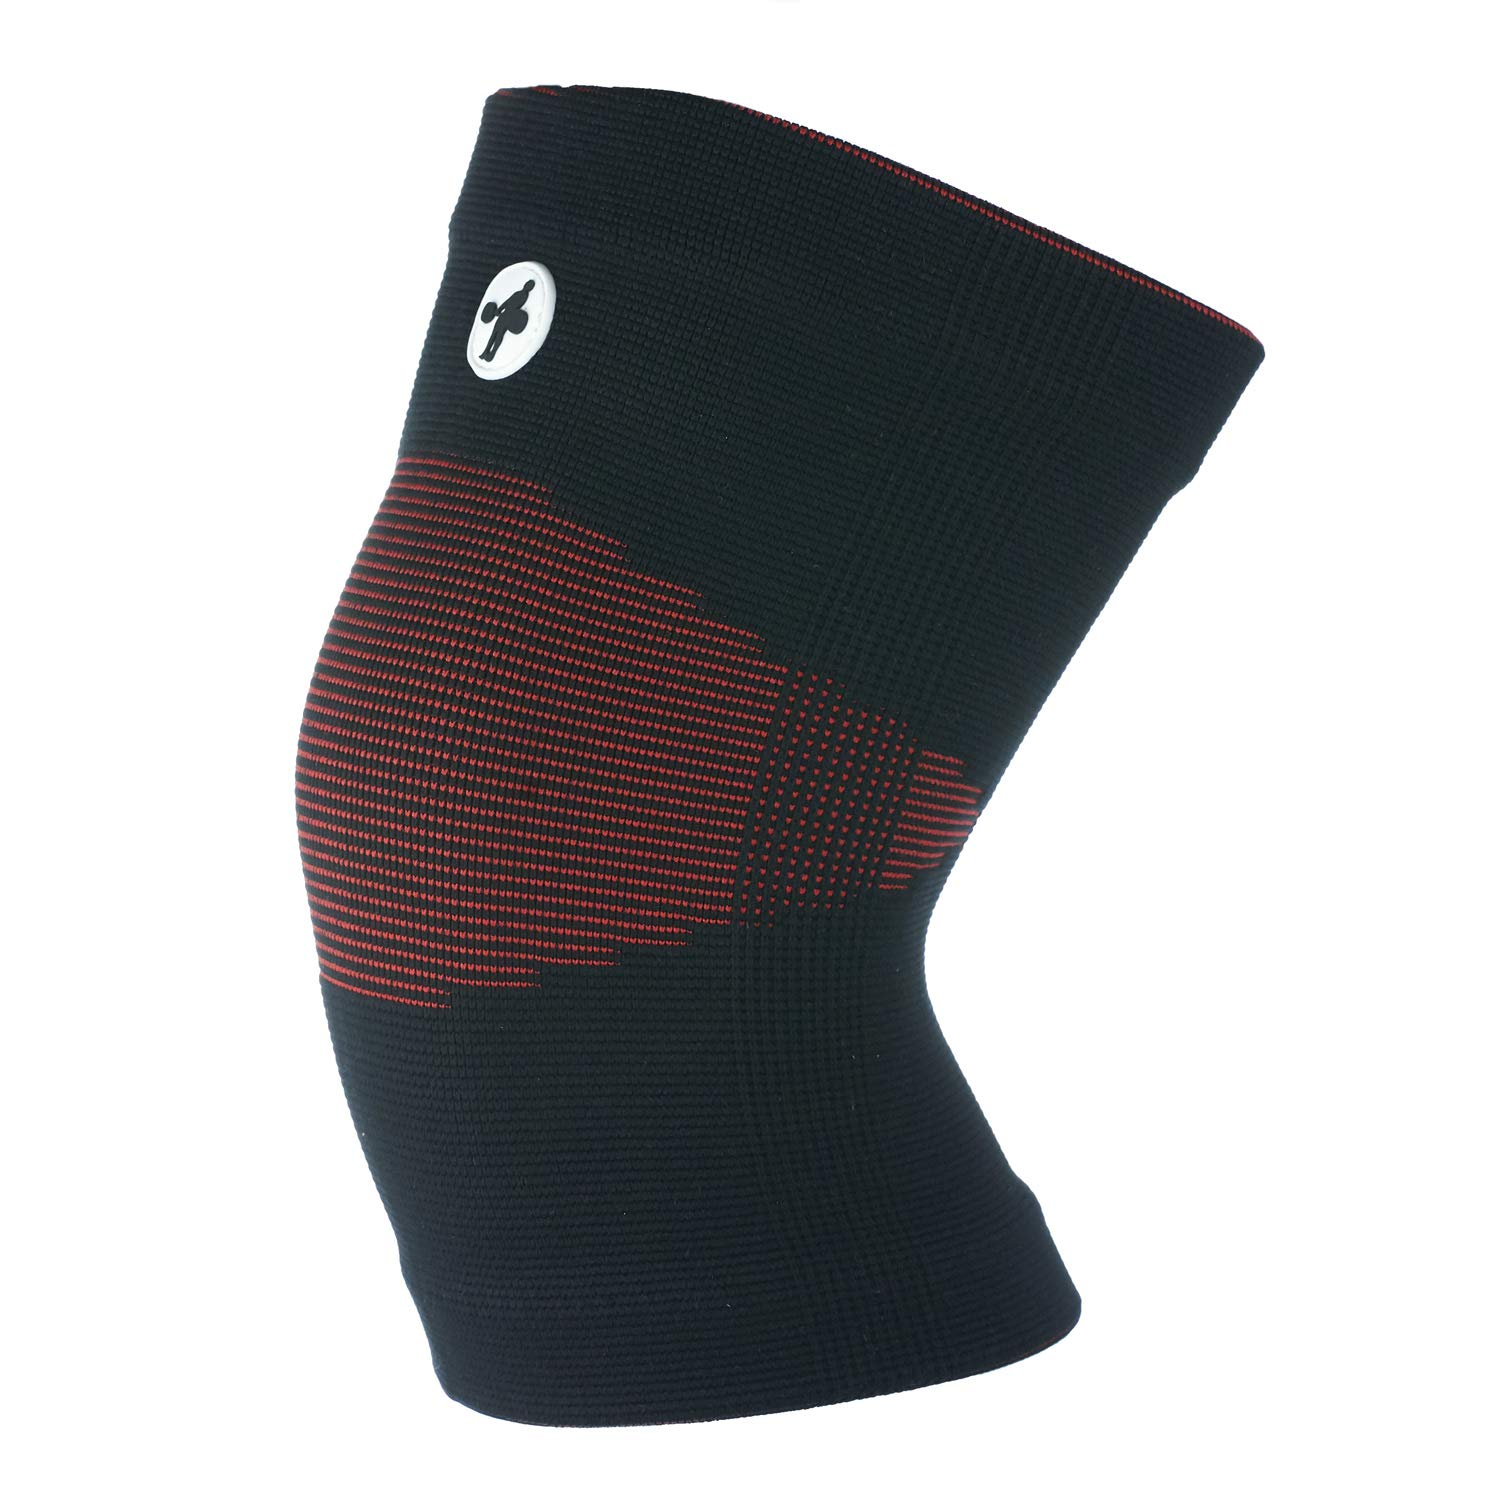 Knee Sleeves for Weightlifting, Crossfit, Chinese Style (Black and Red, Small)